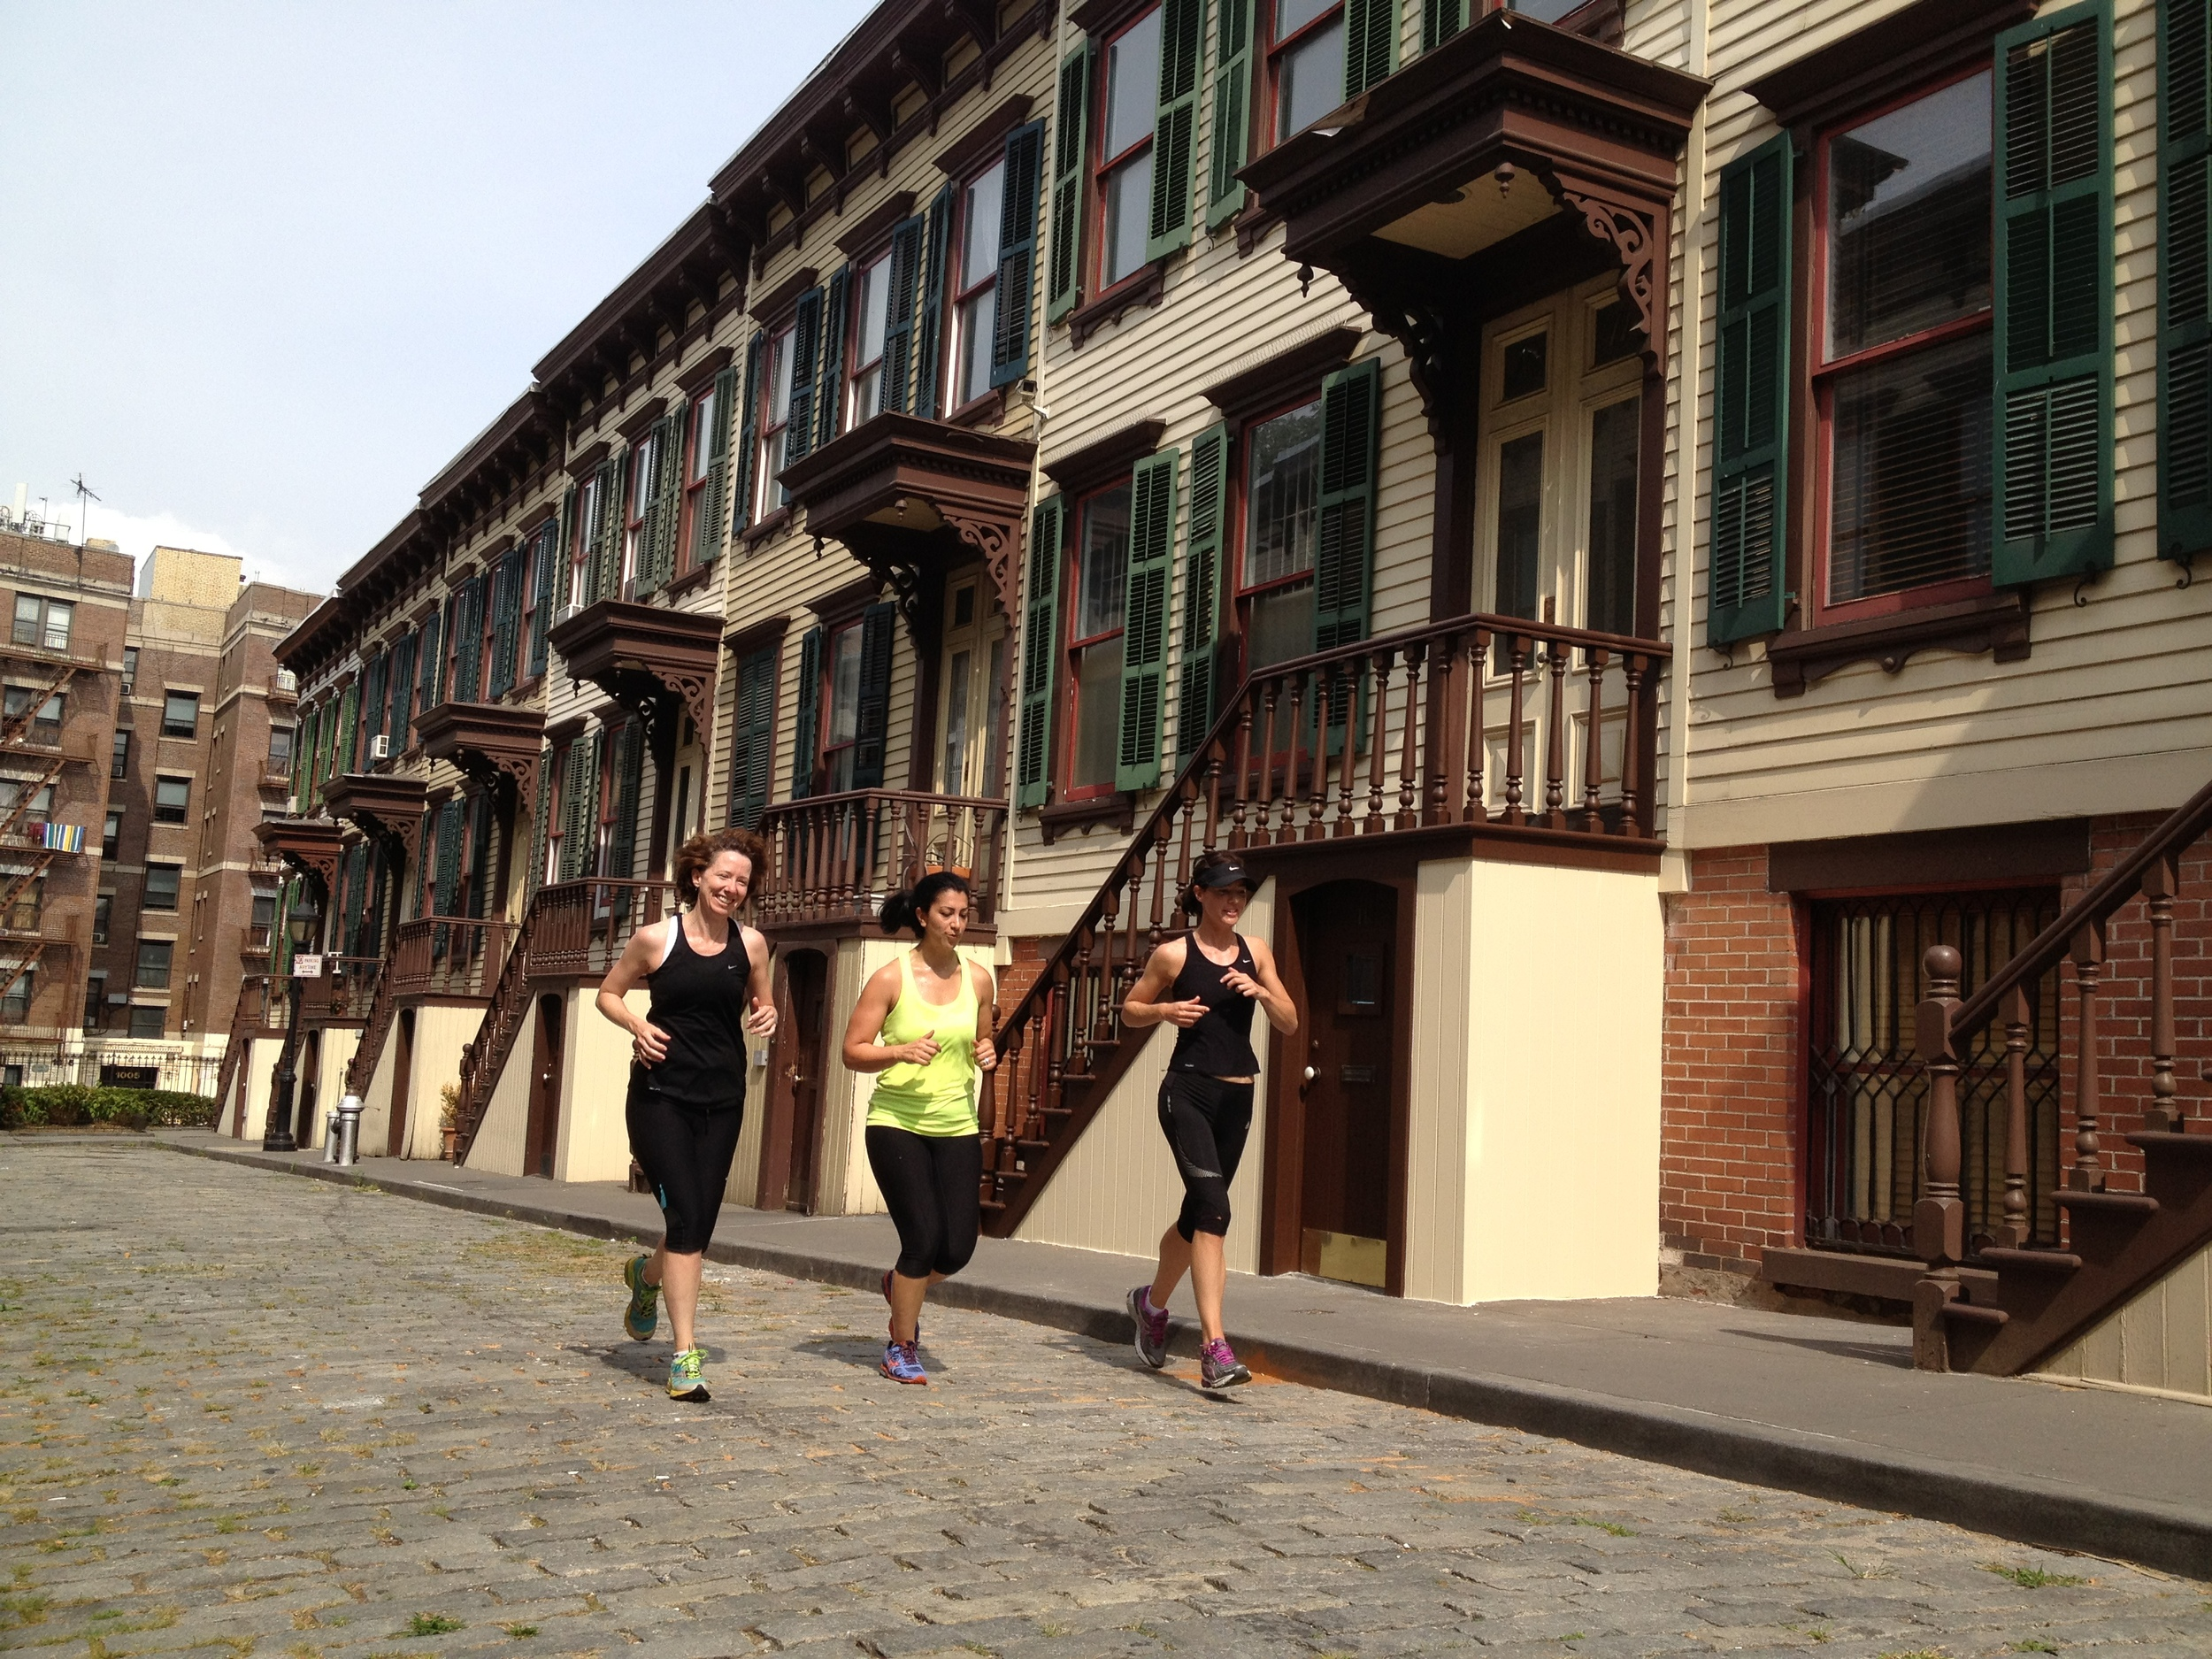 CREATE YOUR OWN NEW YORK CITY RUNNING EXPERIENCE